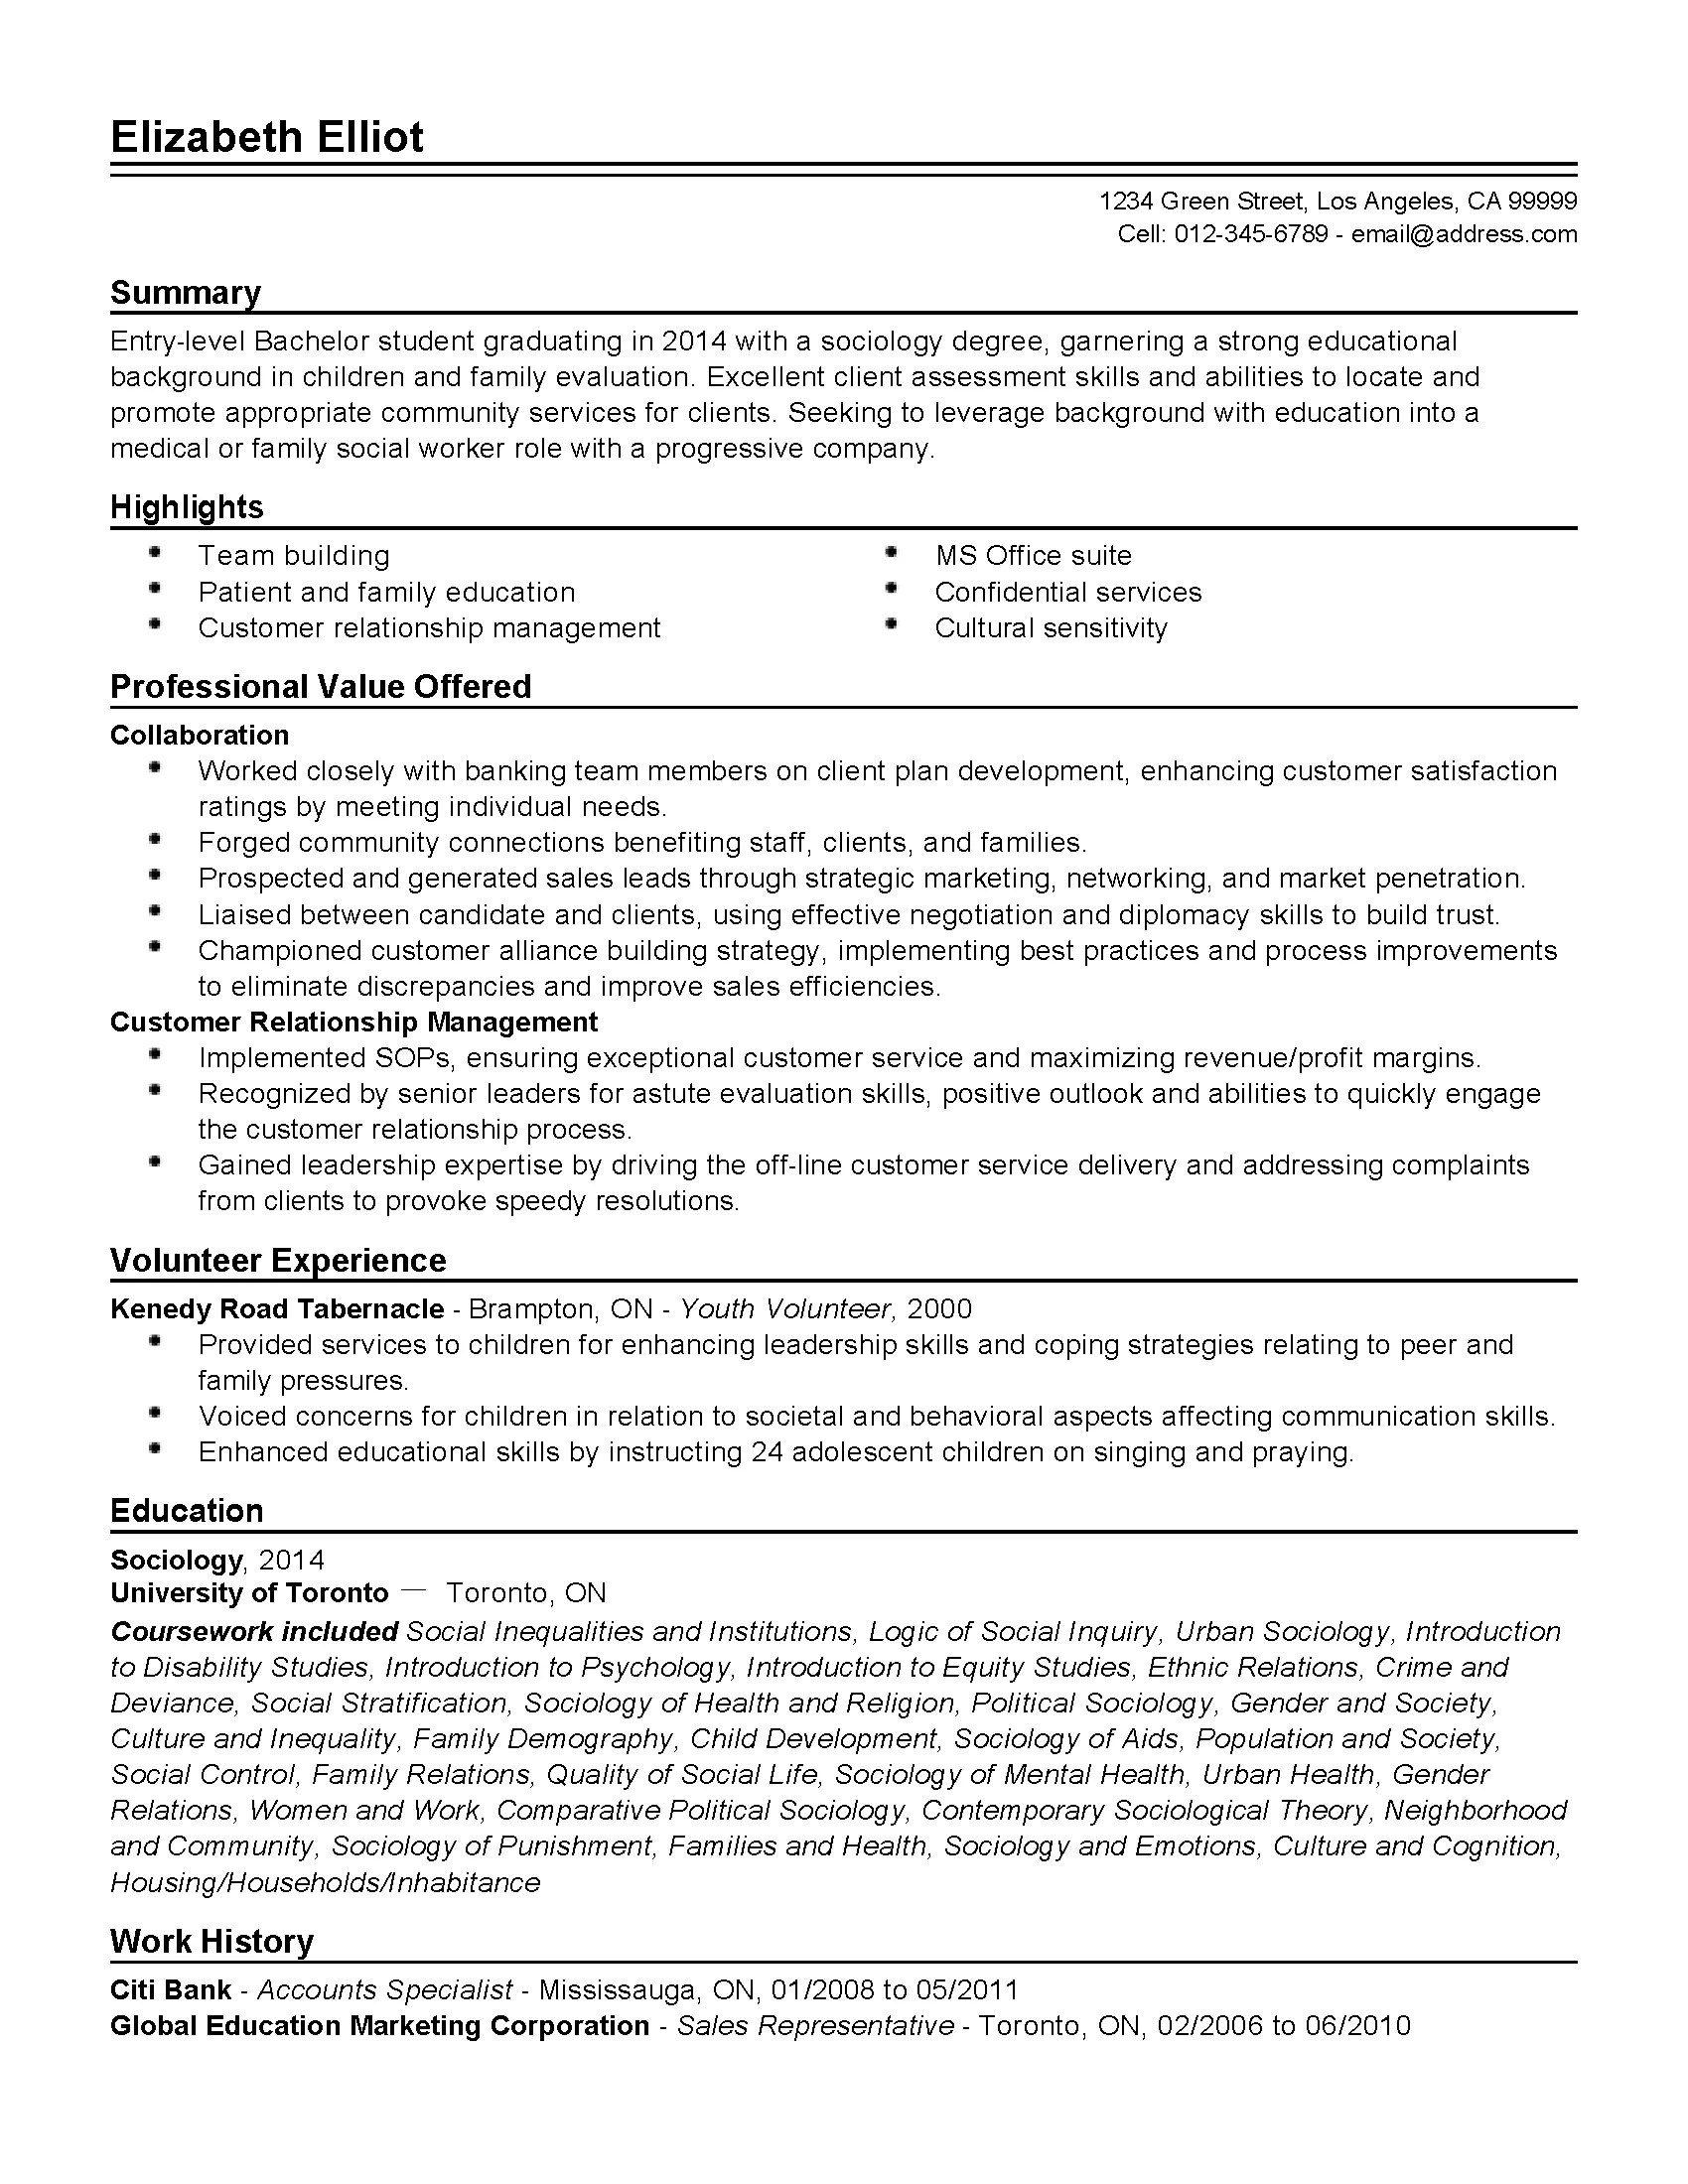 Social Worker Resume Examples Professional Entry Level Social Worker Templates To